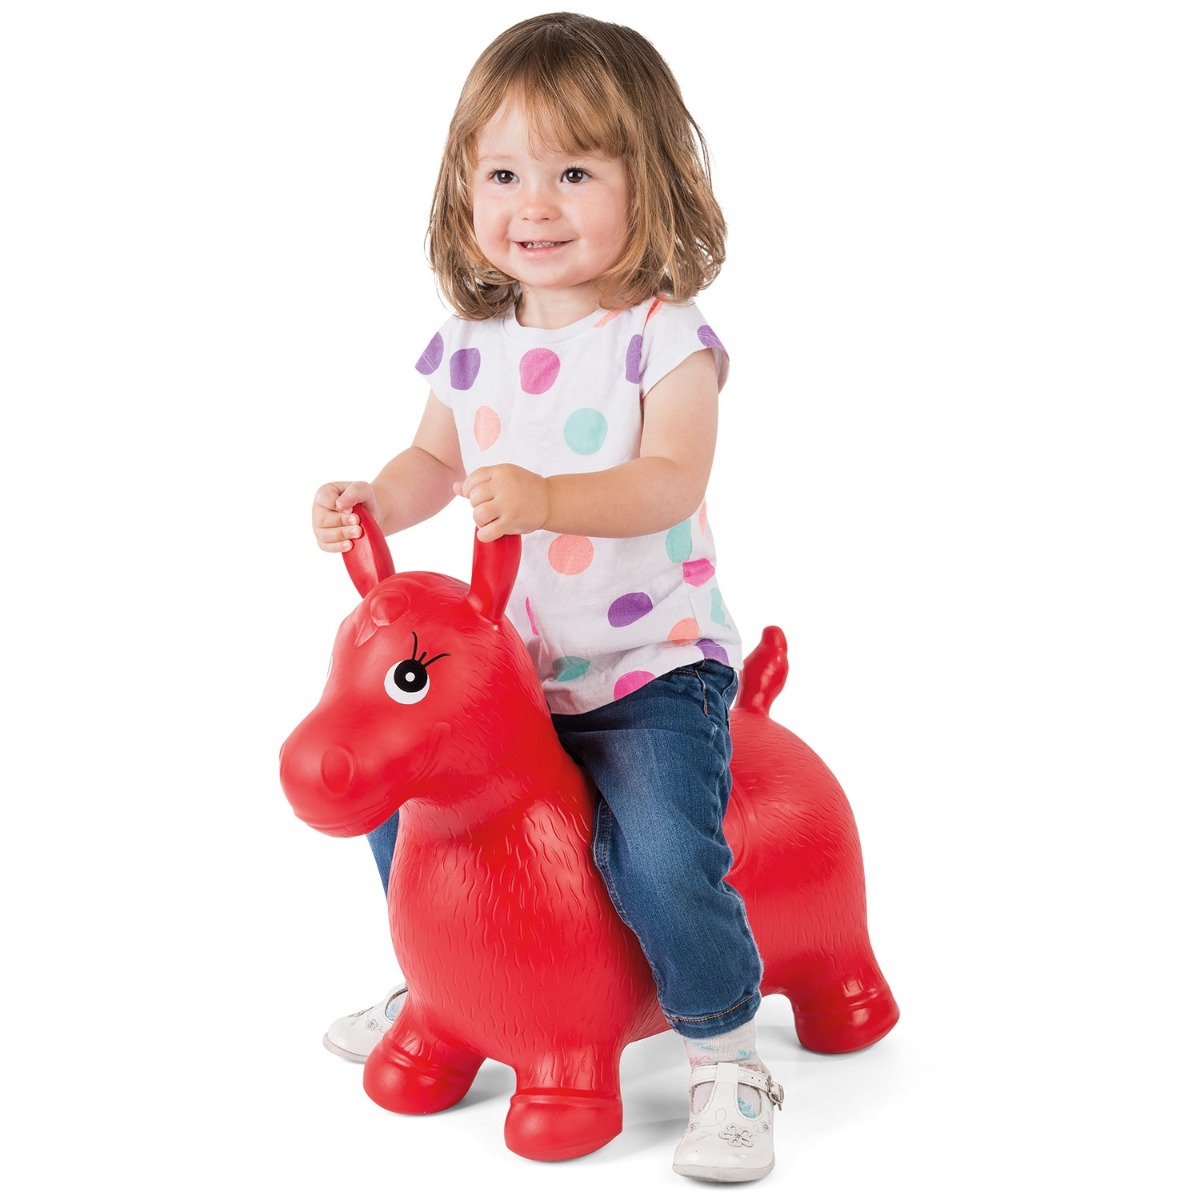 B toys Bouncy Boing BPA Free Hanky the Hippo Inflatable Ride-On Bouncer